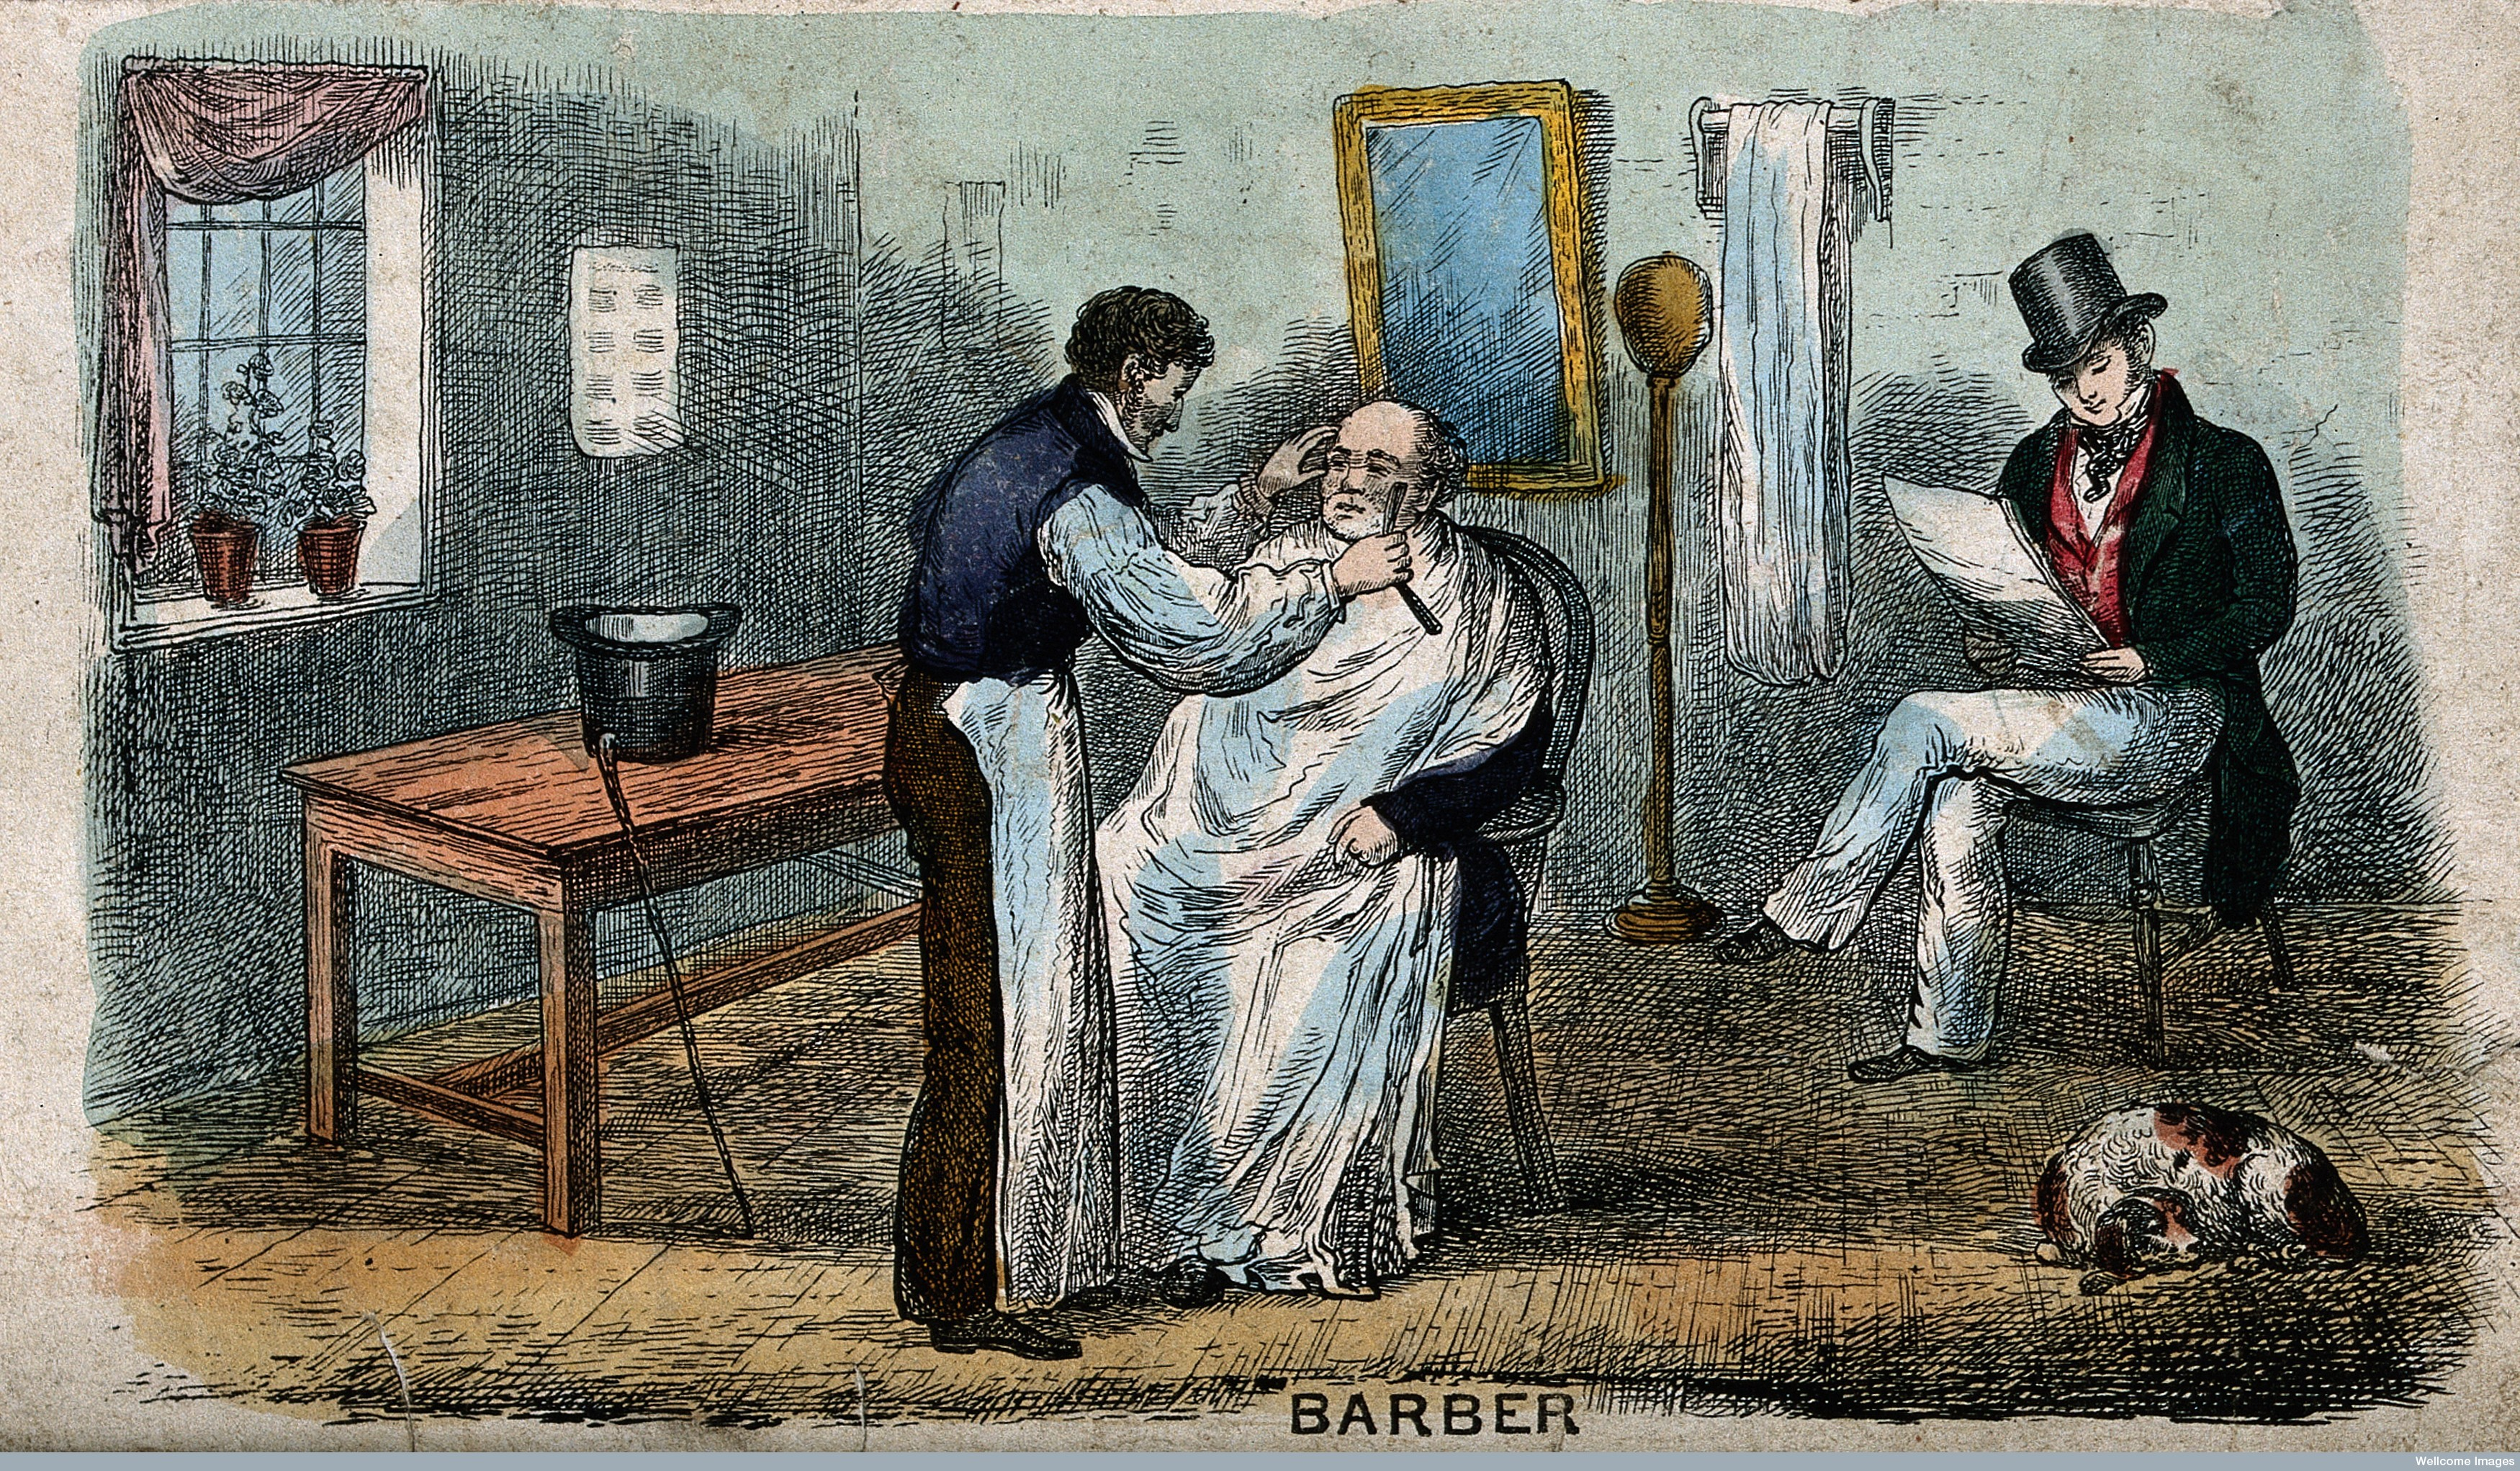 V0019668 A barber shaving a man; another man sits in the background a